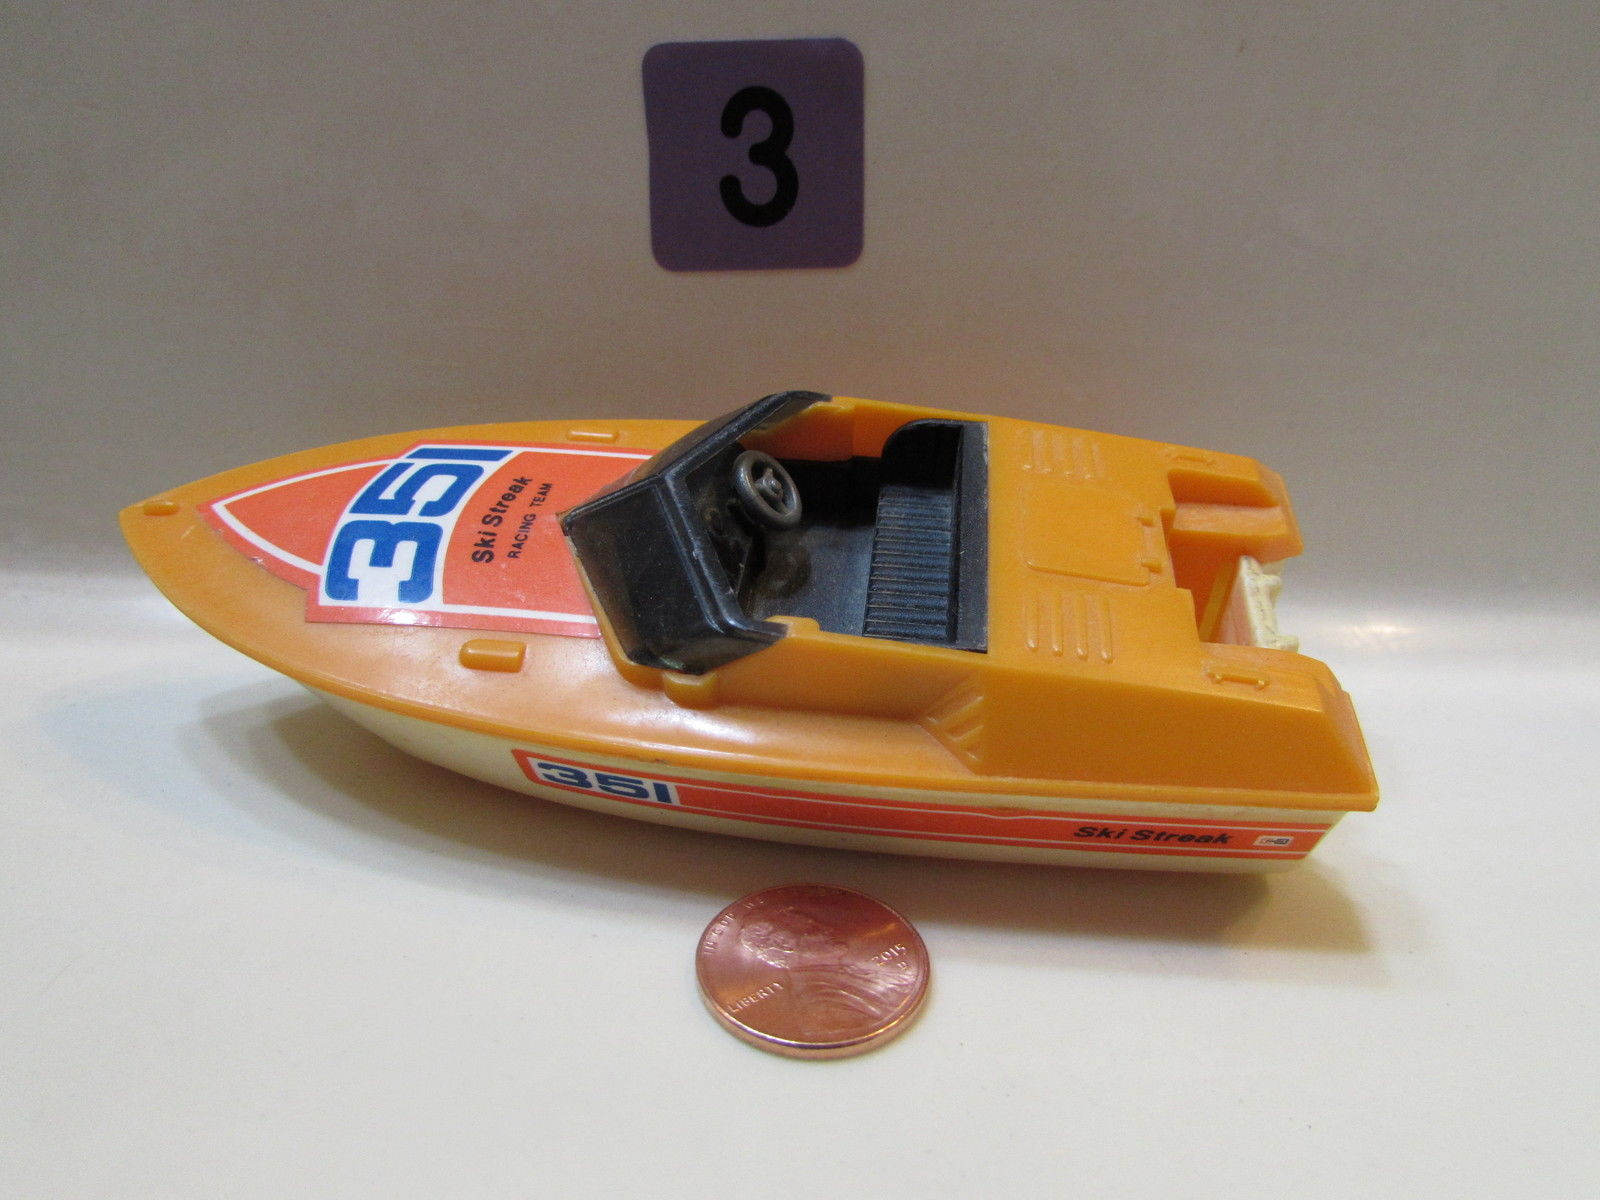 1976 TOMY - 351 SKI STREAK RACING TEAM / NO ENGINE - MADE IN TAIWAN